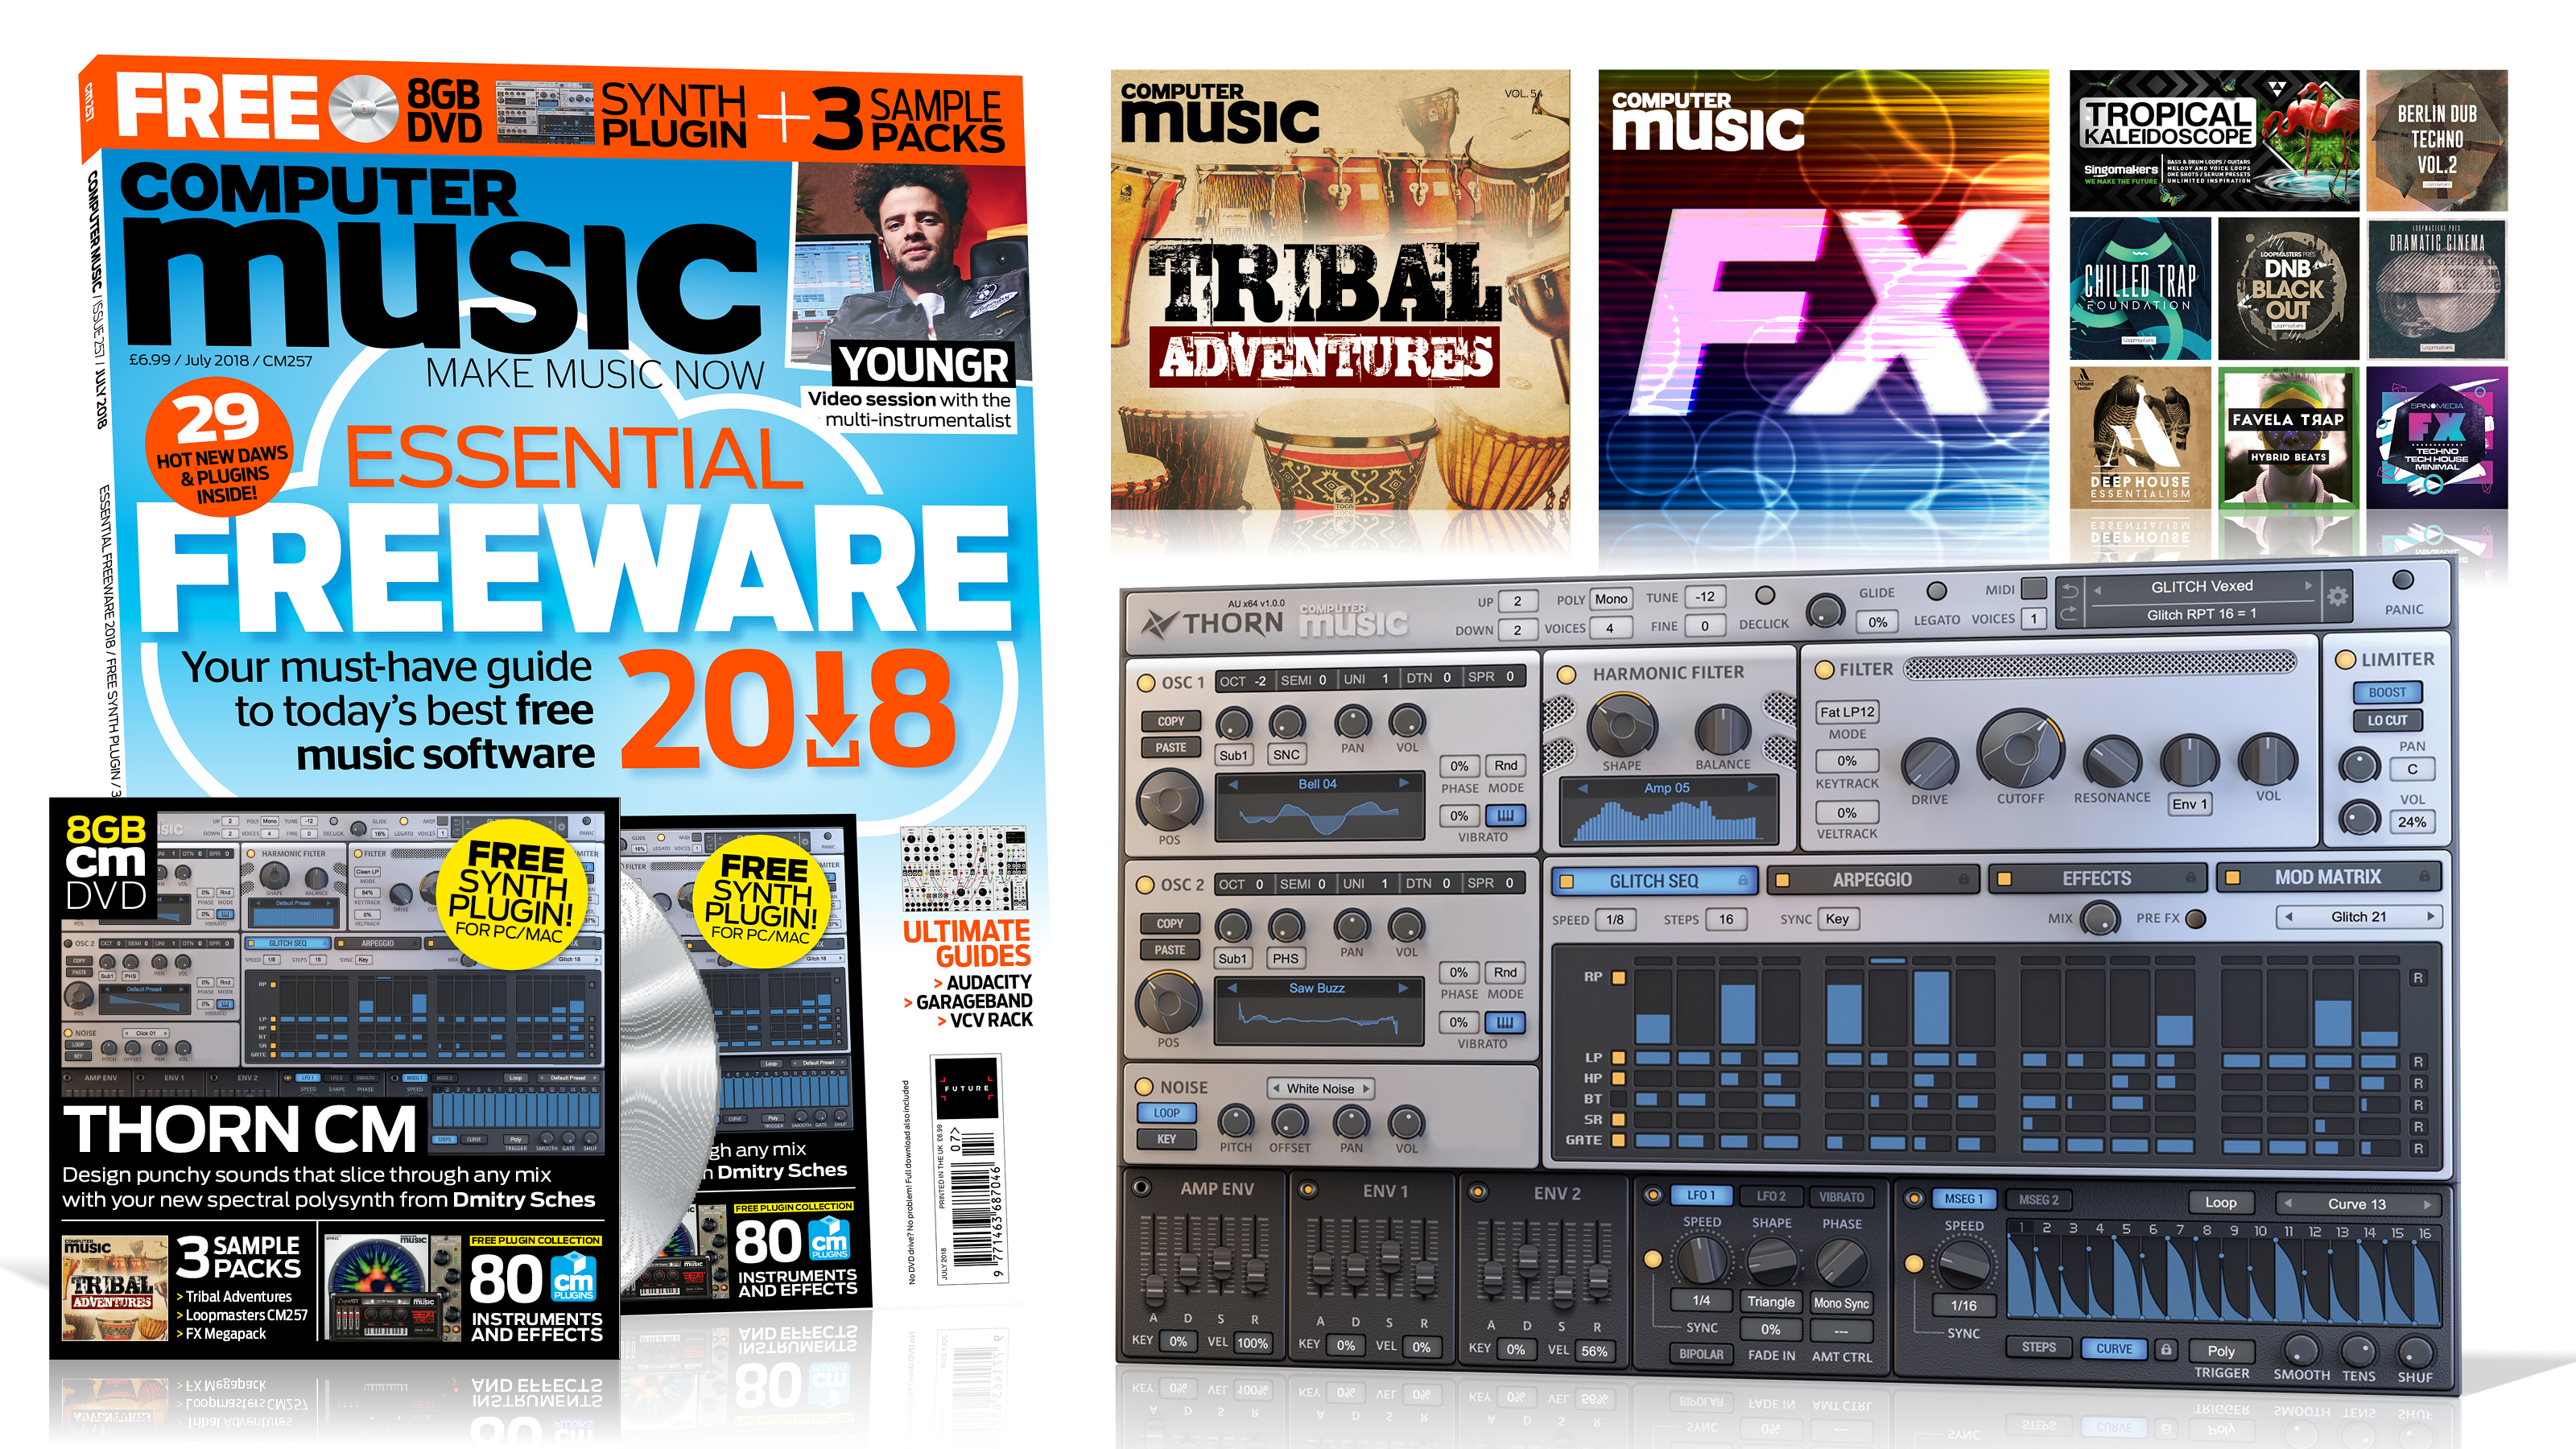 ESSENTIAL FREEWARE 2018 – Computer Music issue 257 is out